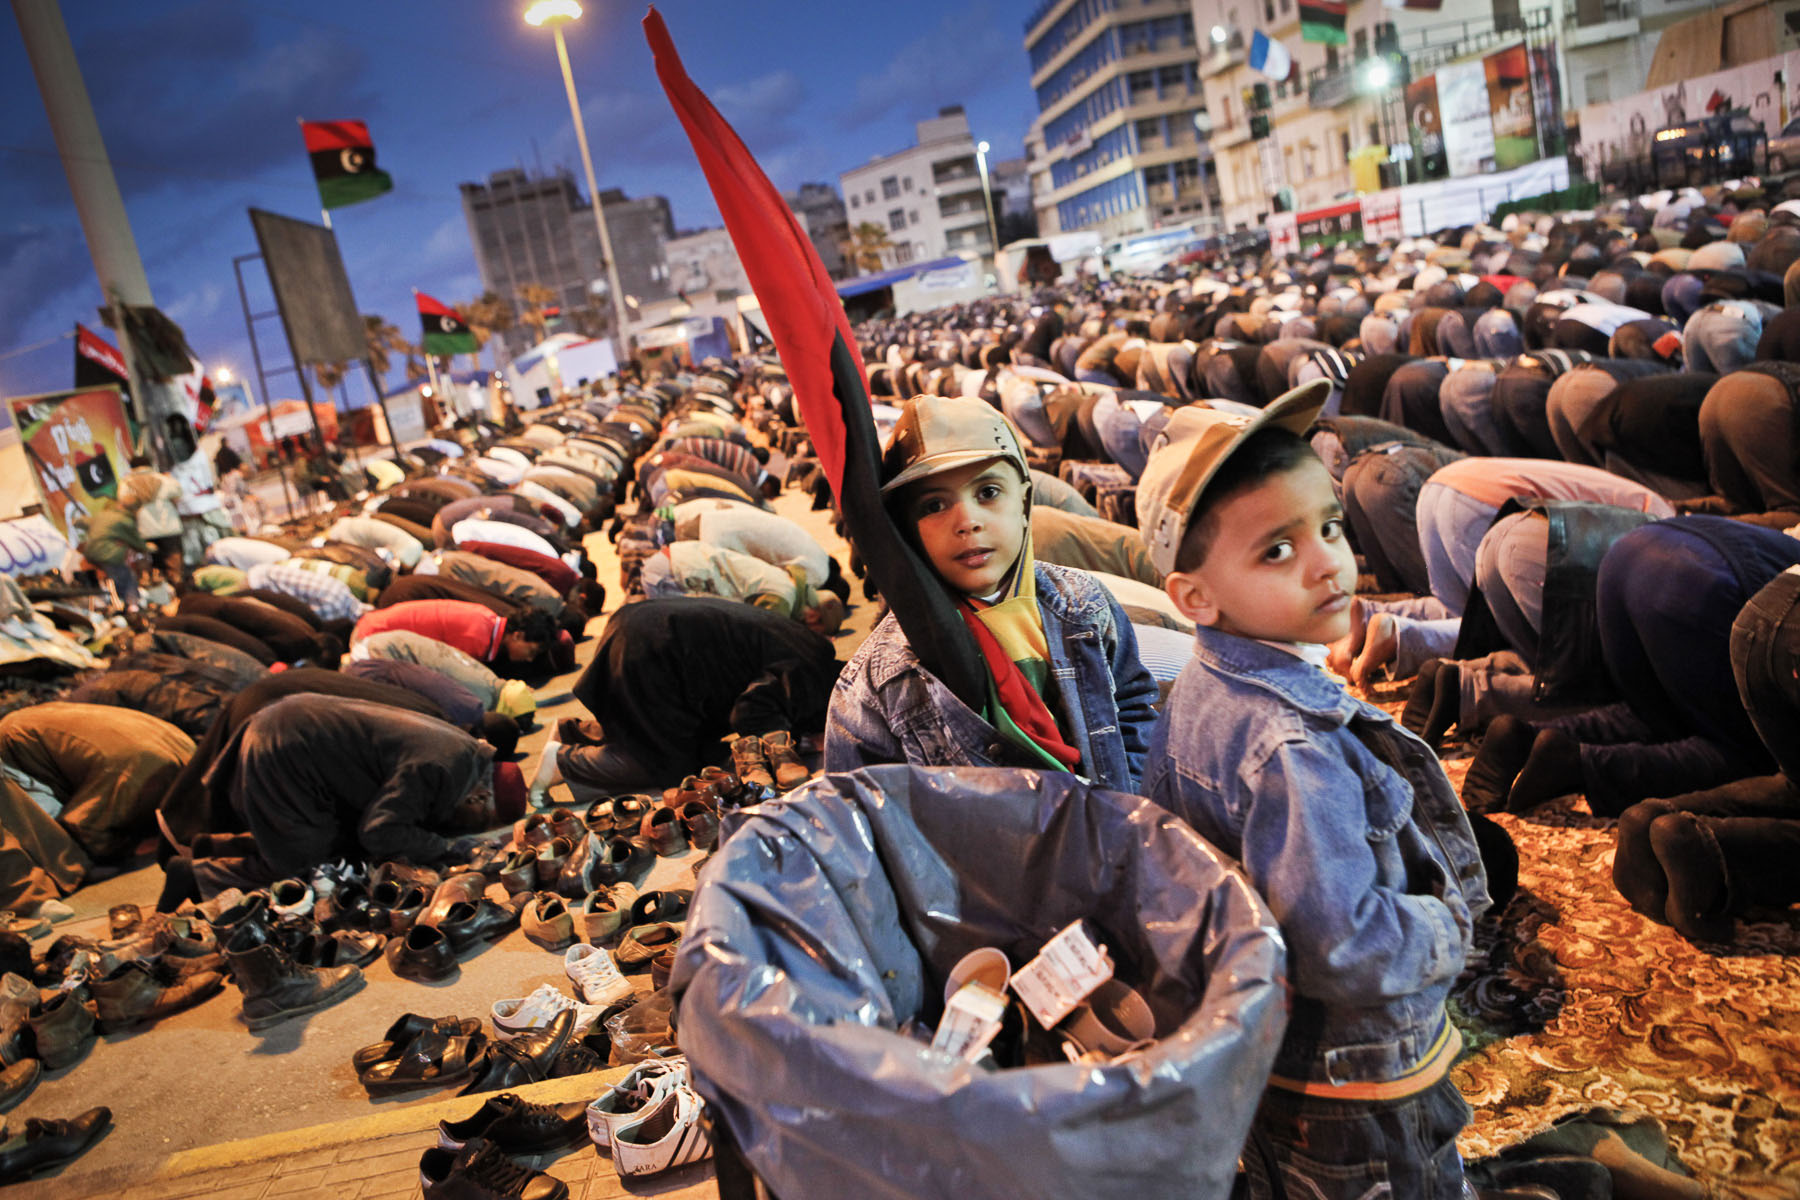 Young boys wait for their father during the evening prayer on the new Tahrir Square (Liberty Square) of Benghazi in April 2011